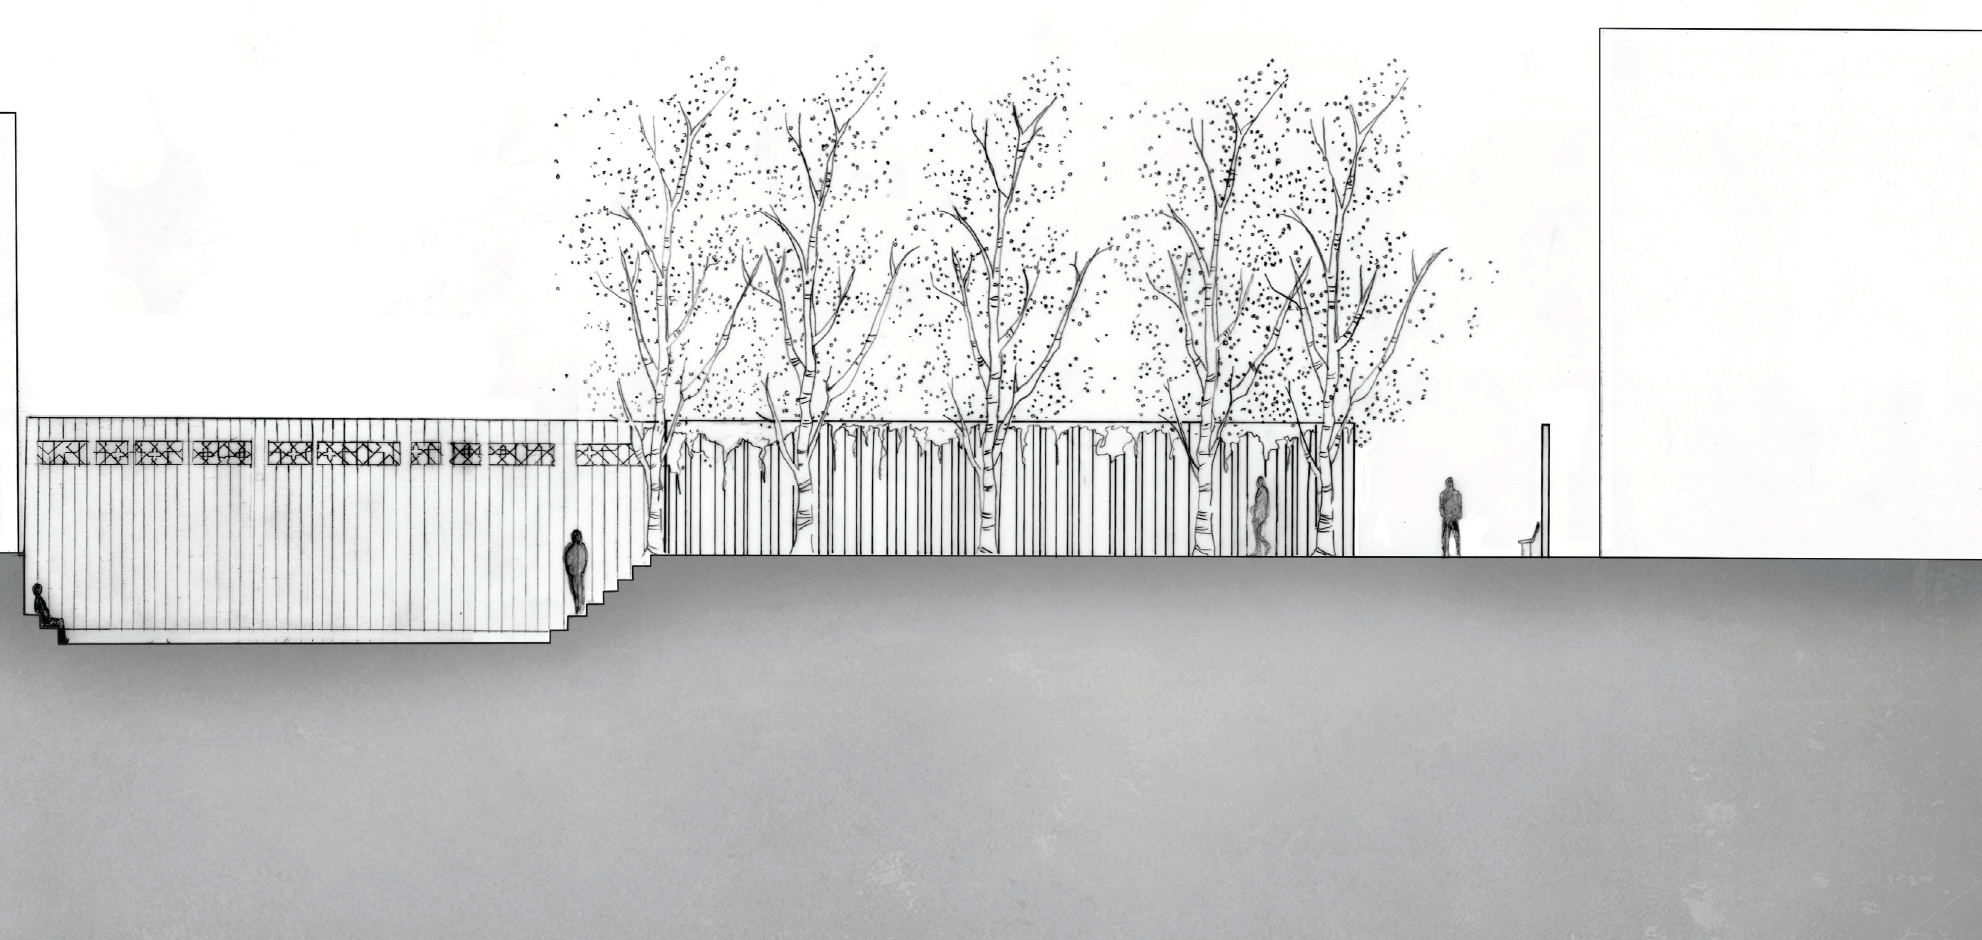 Section - Elevation of one of the in-between designs. Sound absorption occurs with the wood and greenery, leading the dweller into a recessed space. Walking away from the city and the city sounds to a more secluded and intimate space for people to gather. Embracing the in-betweens.